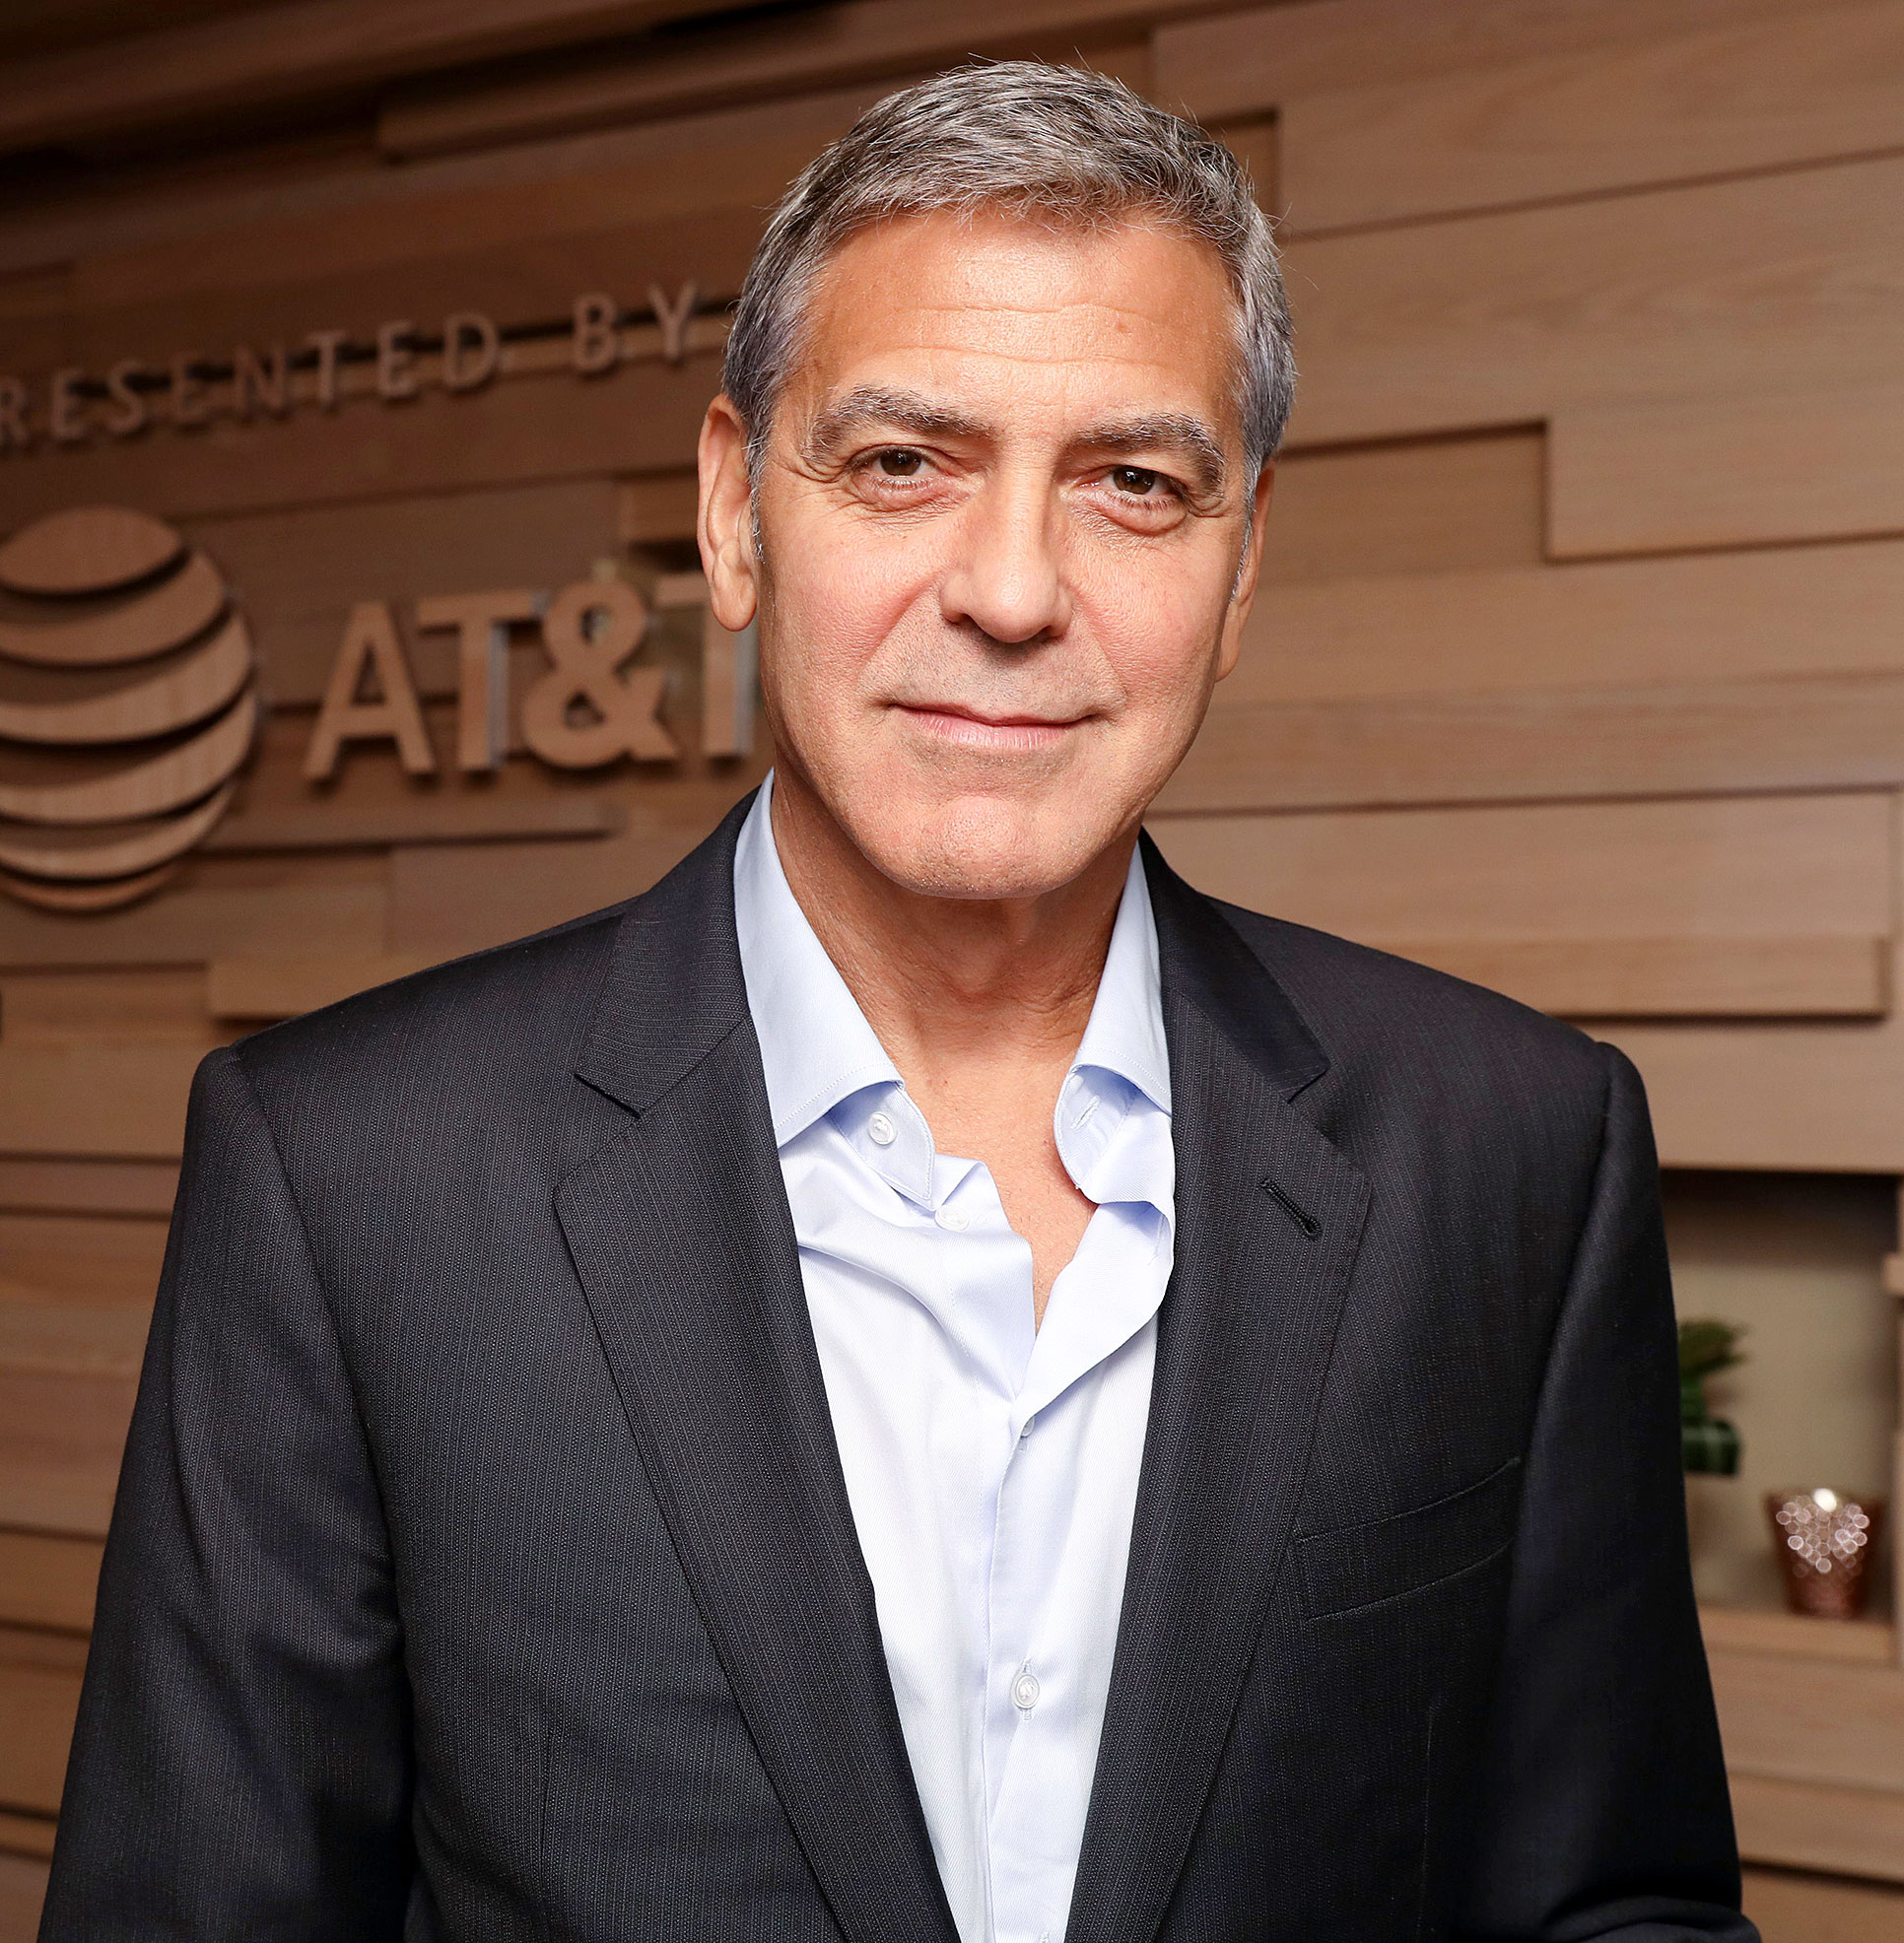 George Clooney Says Racism Is Our Pandemic Amid George Floyd Protests